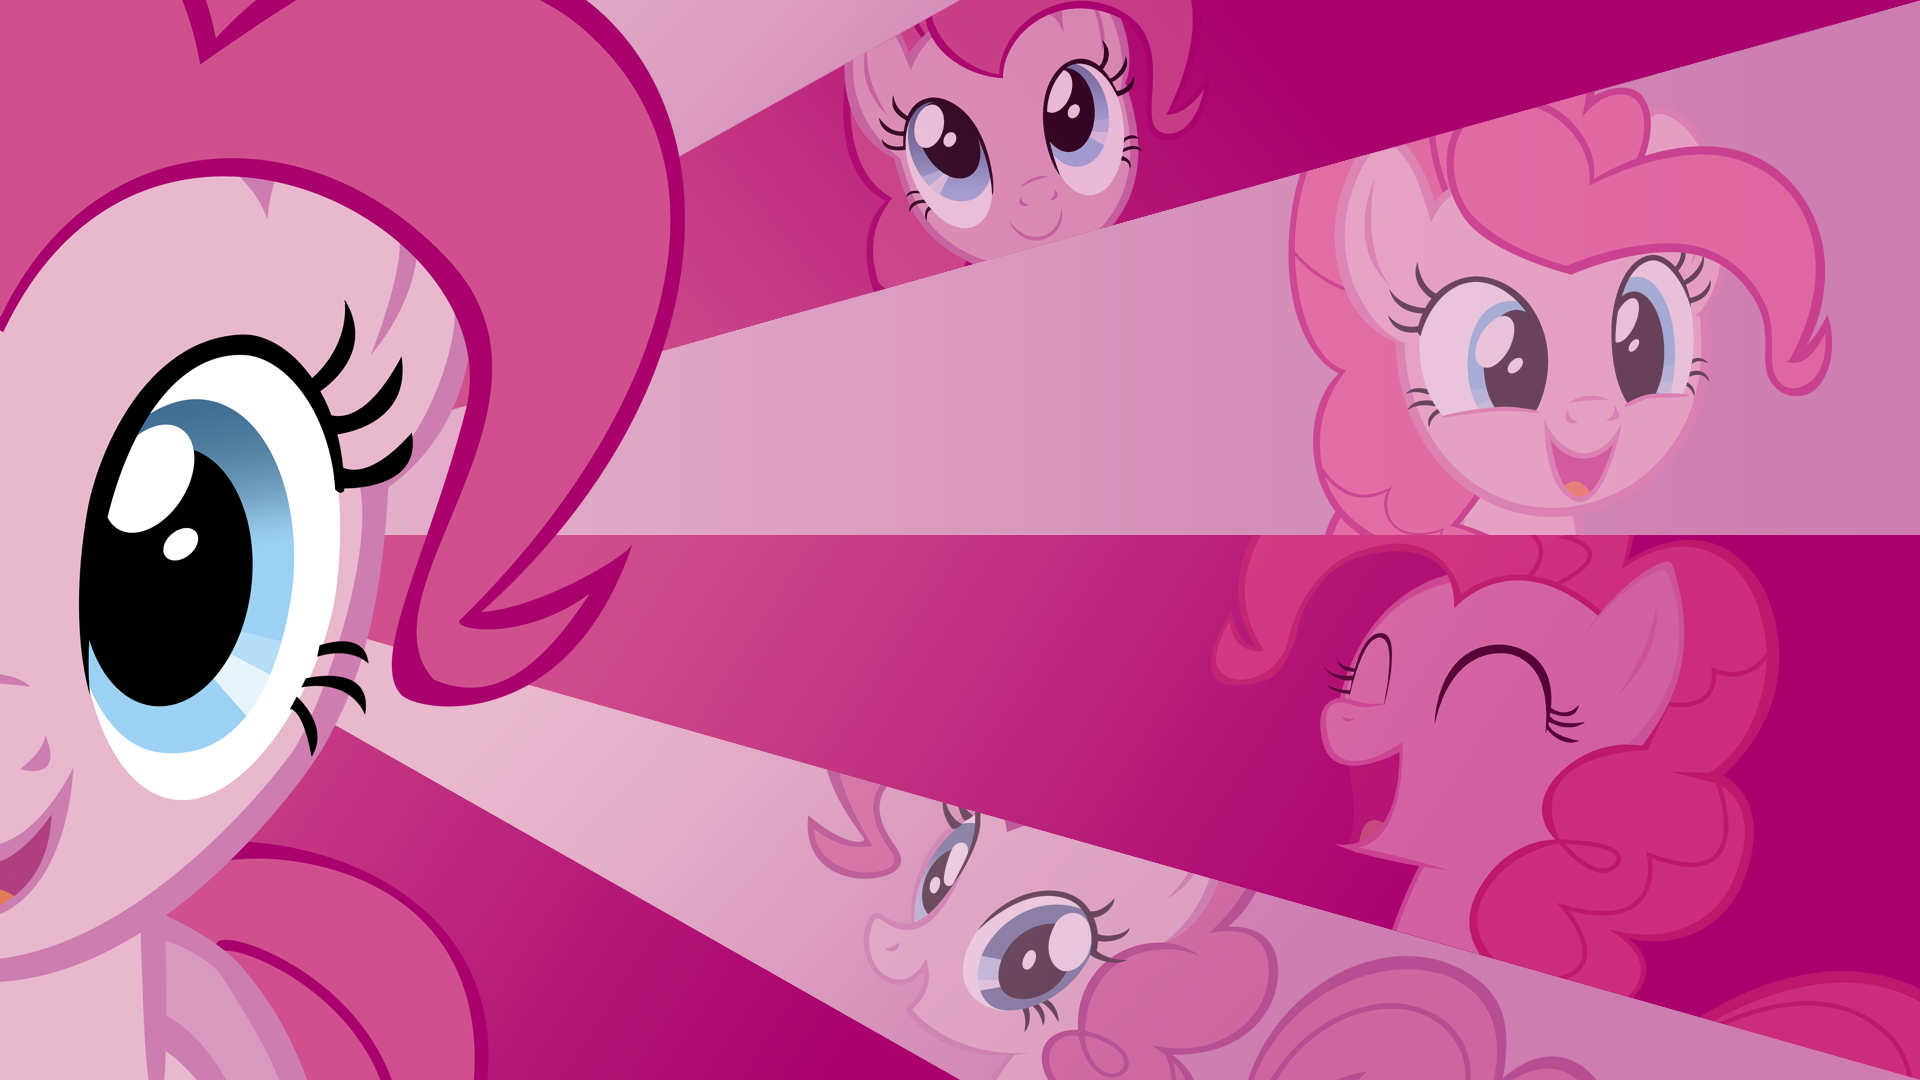 Pinkie Pie Wallpaper 32480435 1920 1080